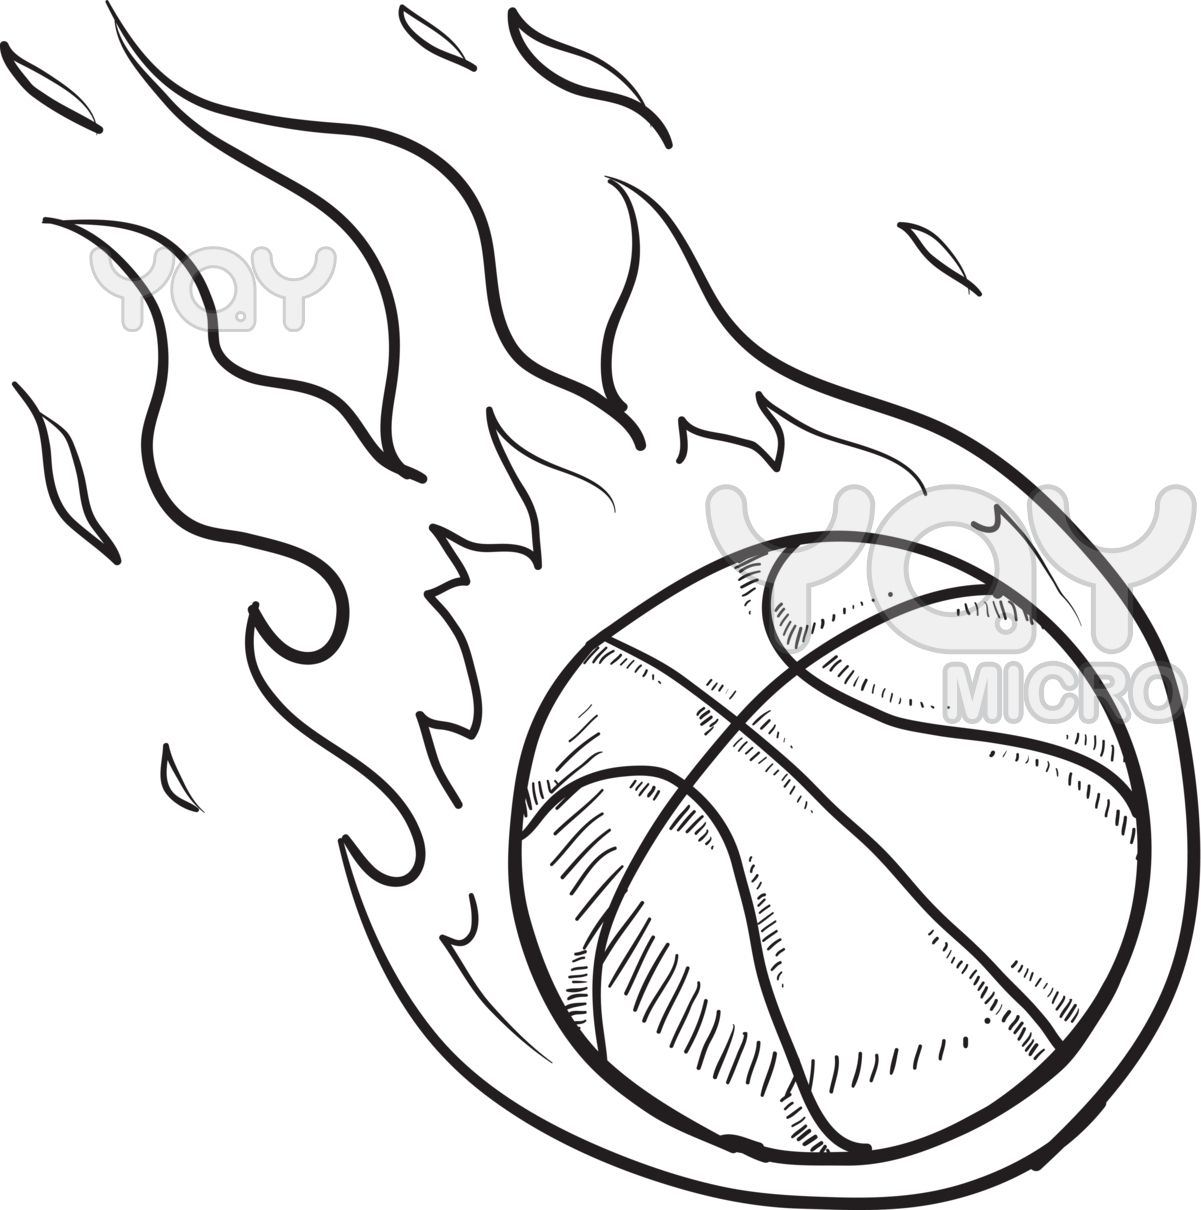 basketball coloring page pages education basketball drawings coloring pages coloring for kids. Black Bedroom Furniture Sets. Home Design Ideas